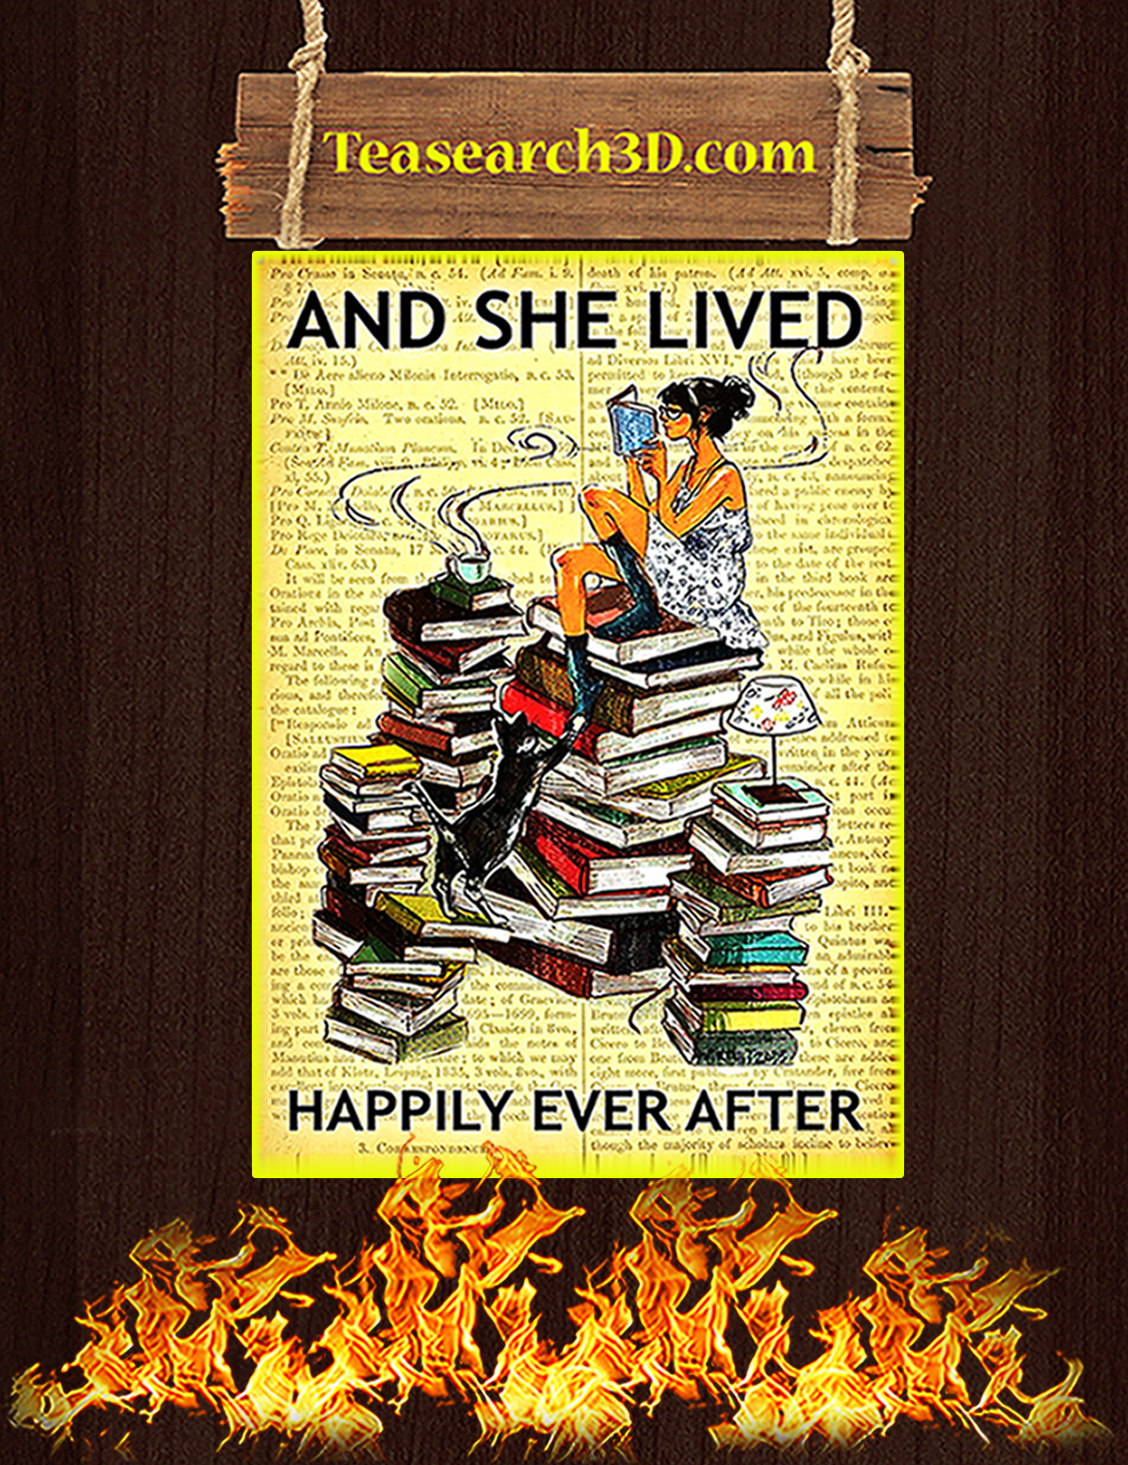 Book And she lived happily ever after poster A3